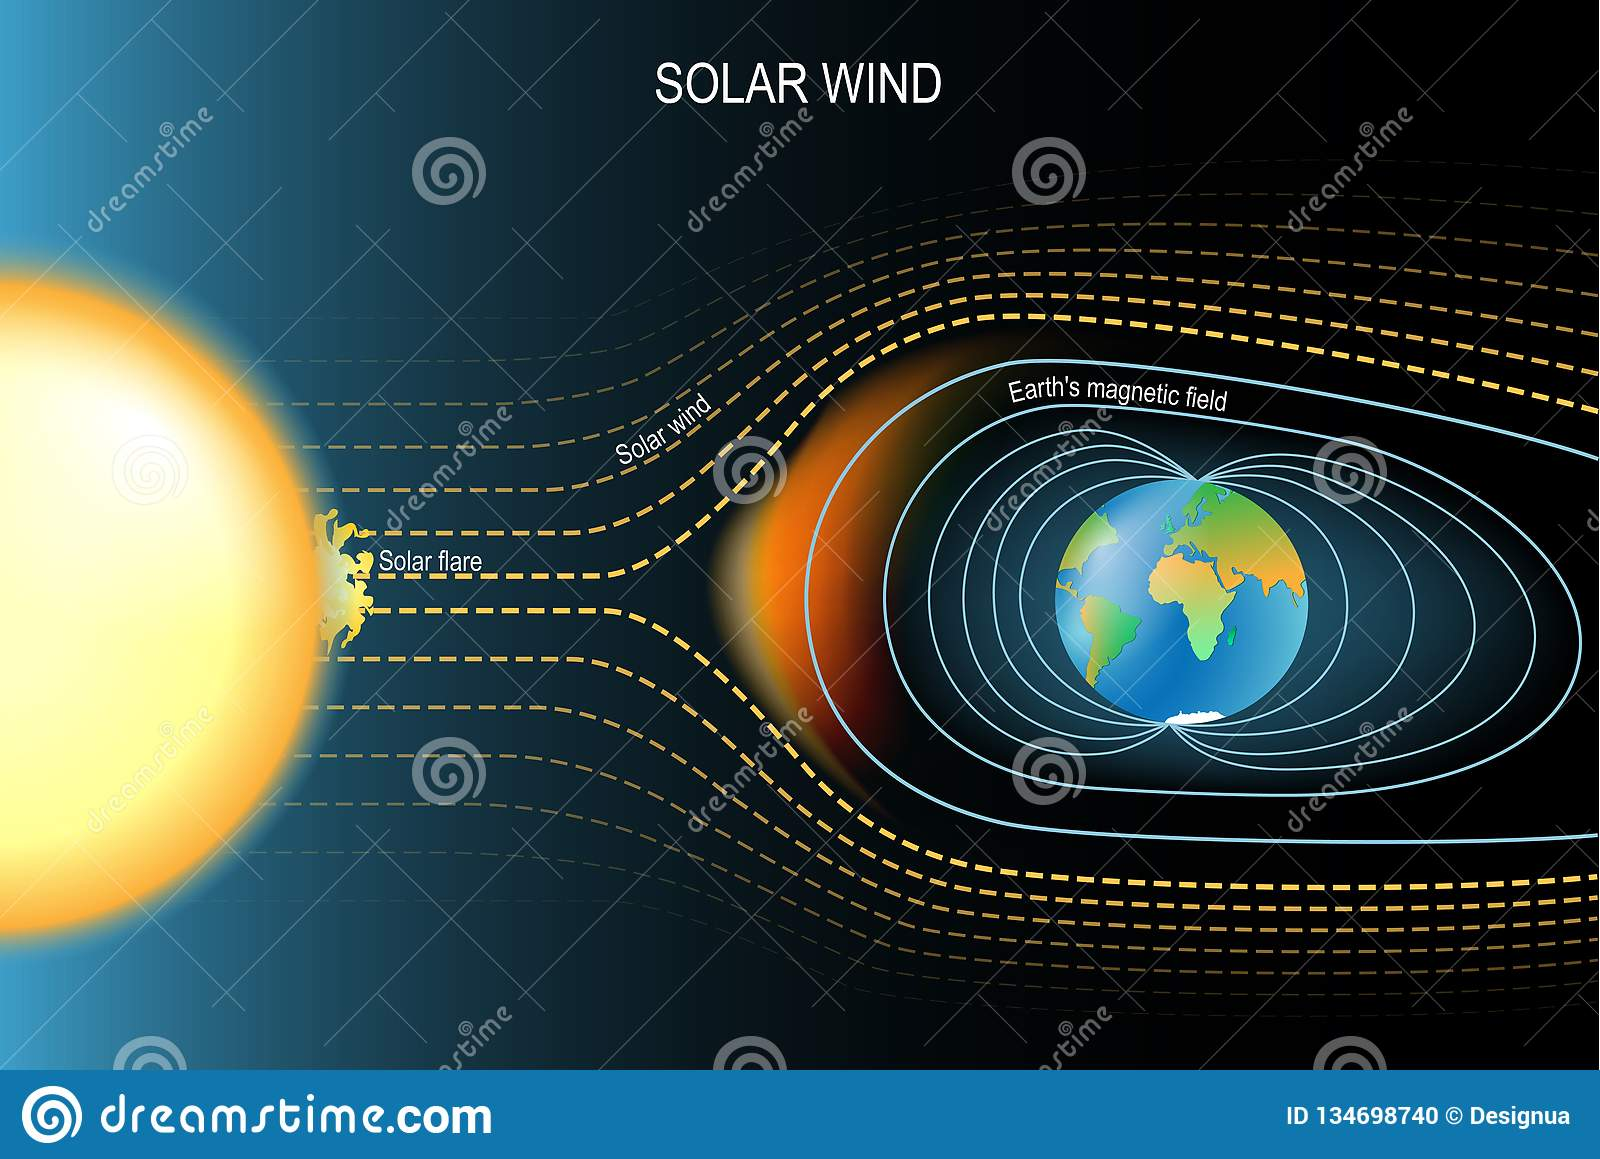 Magnetic field that protected the Earth from solar wind. Earth`s geomagnetic field